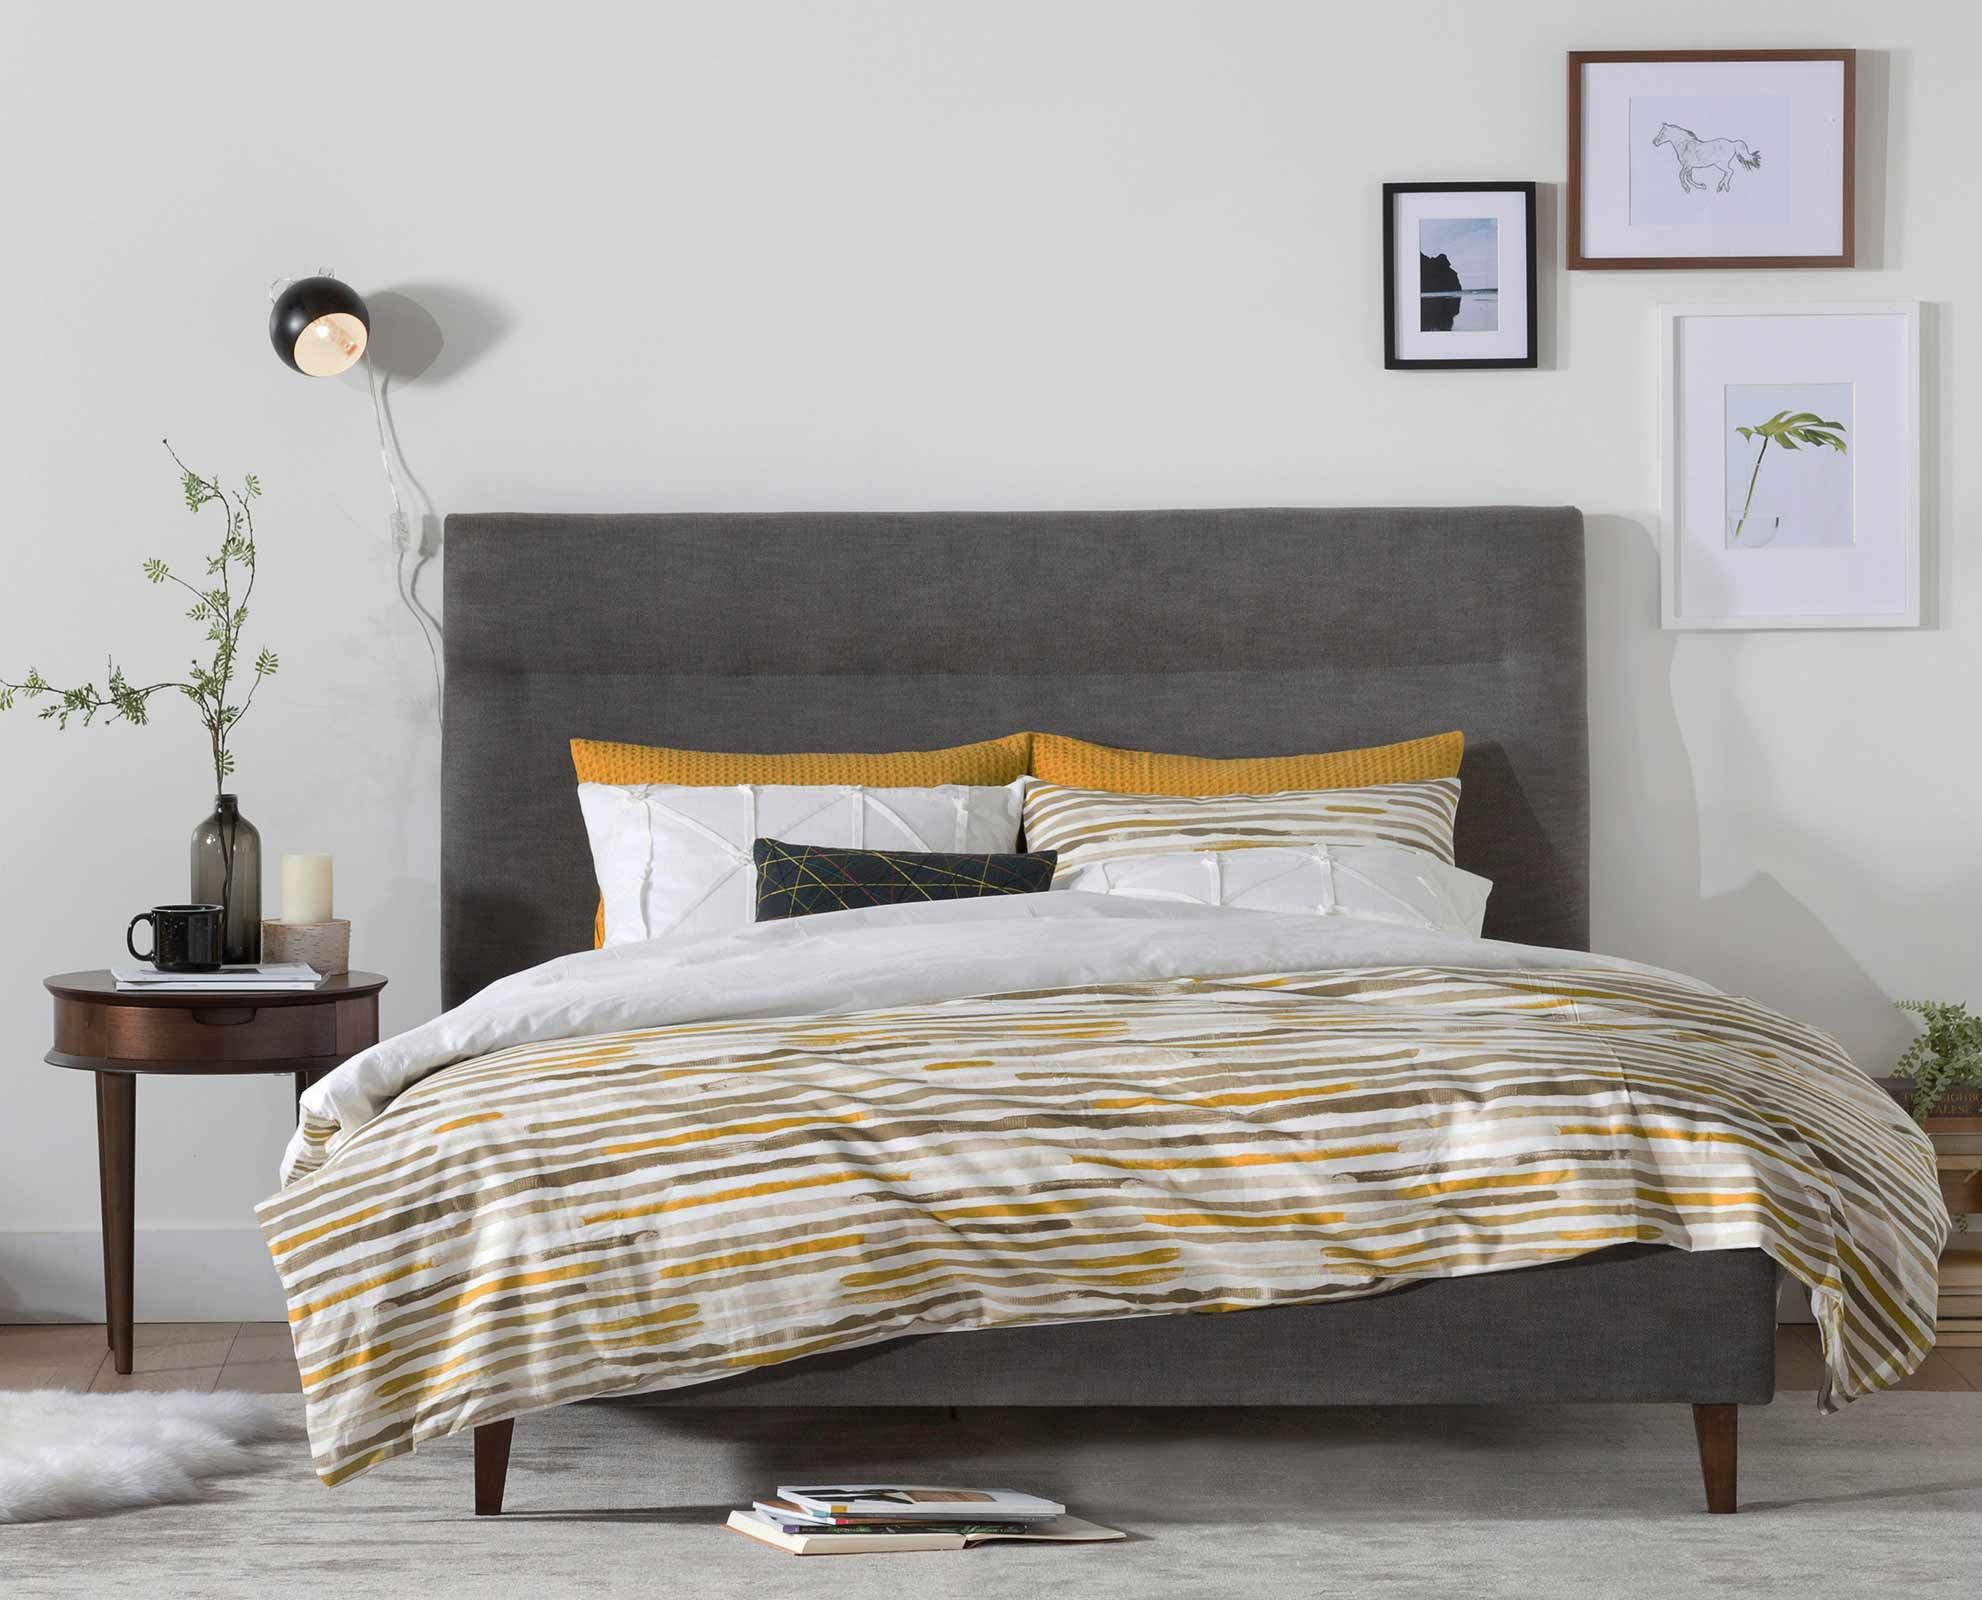 Curate A Modern Bedroom With The Tambur Bed Tall Headboard And Tapered Legs Inspire